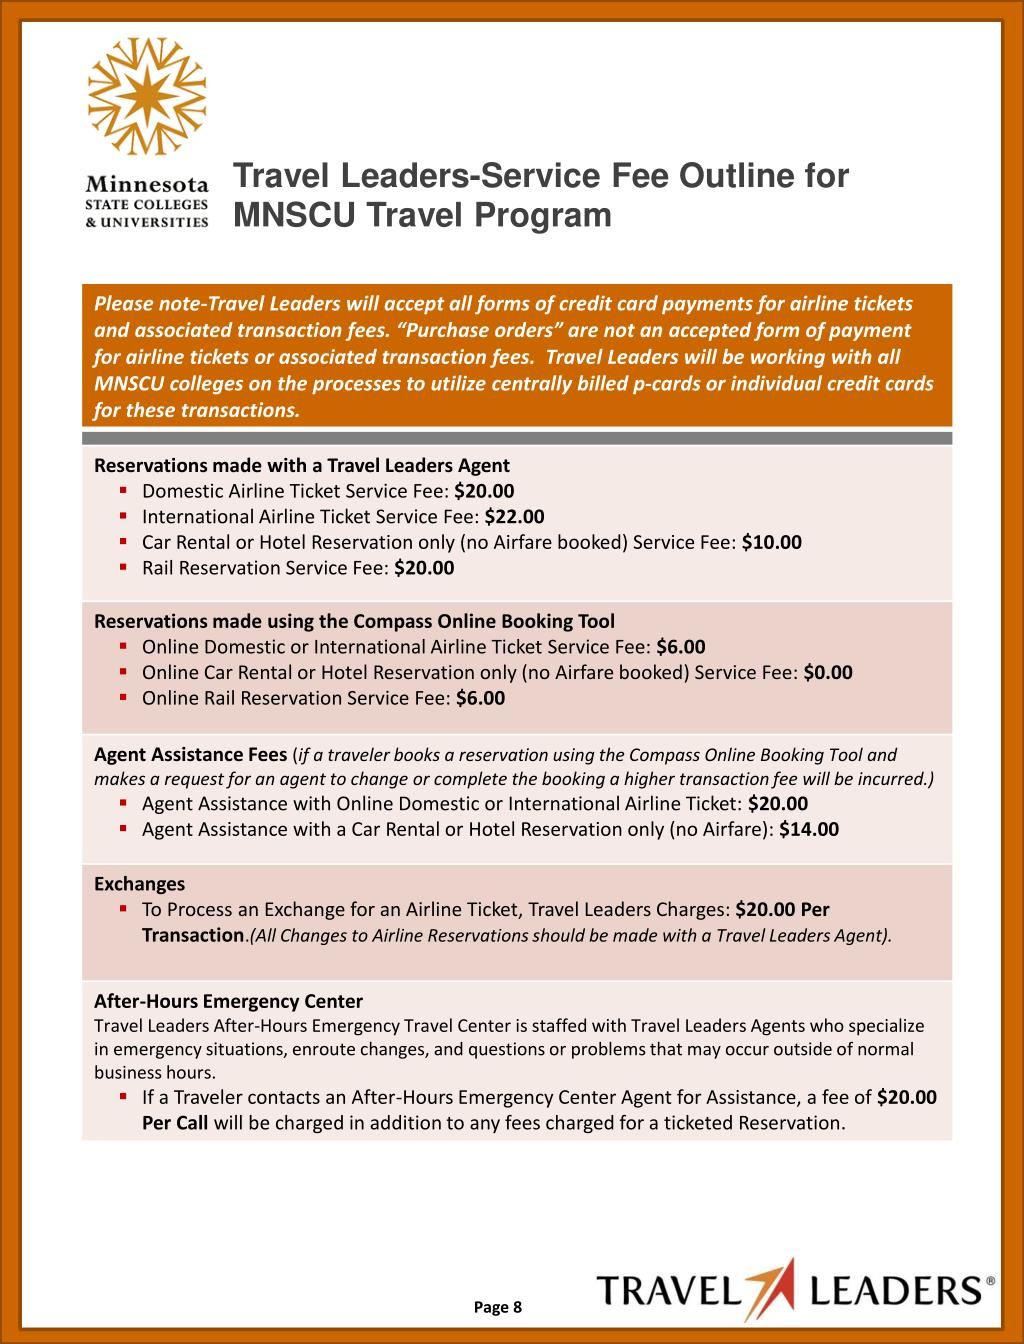 Travel Leaders-Service Fee Outline for